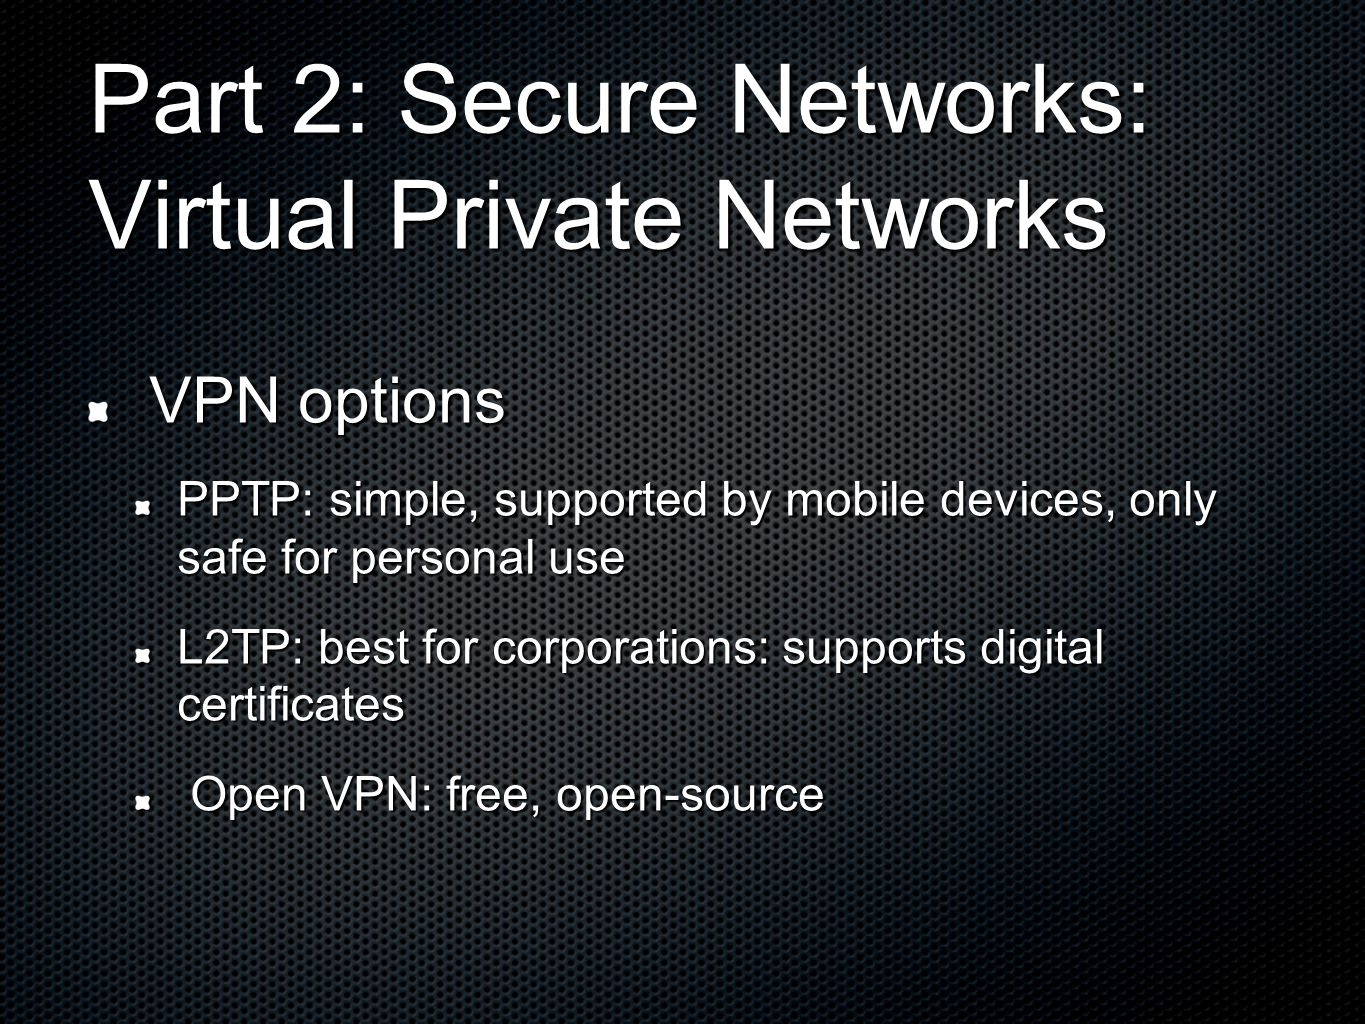 Part 2: Secure Networks: Virtual Private Networks VPN options VPN options PPTP: simple, supported by mobile devices, only safe for personal use L2TP: best for corporations: supports digital certificates Open VPN: free, open-source Open VPN: free, open-source